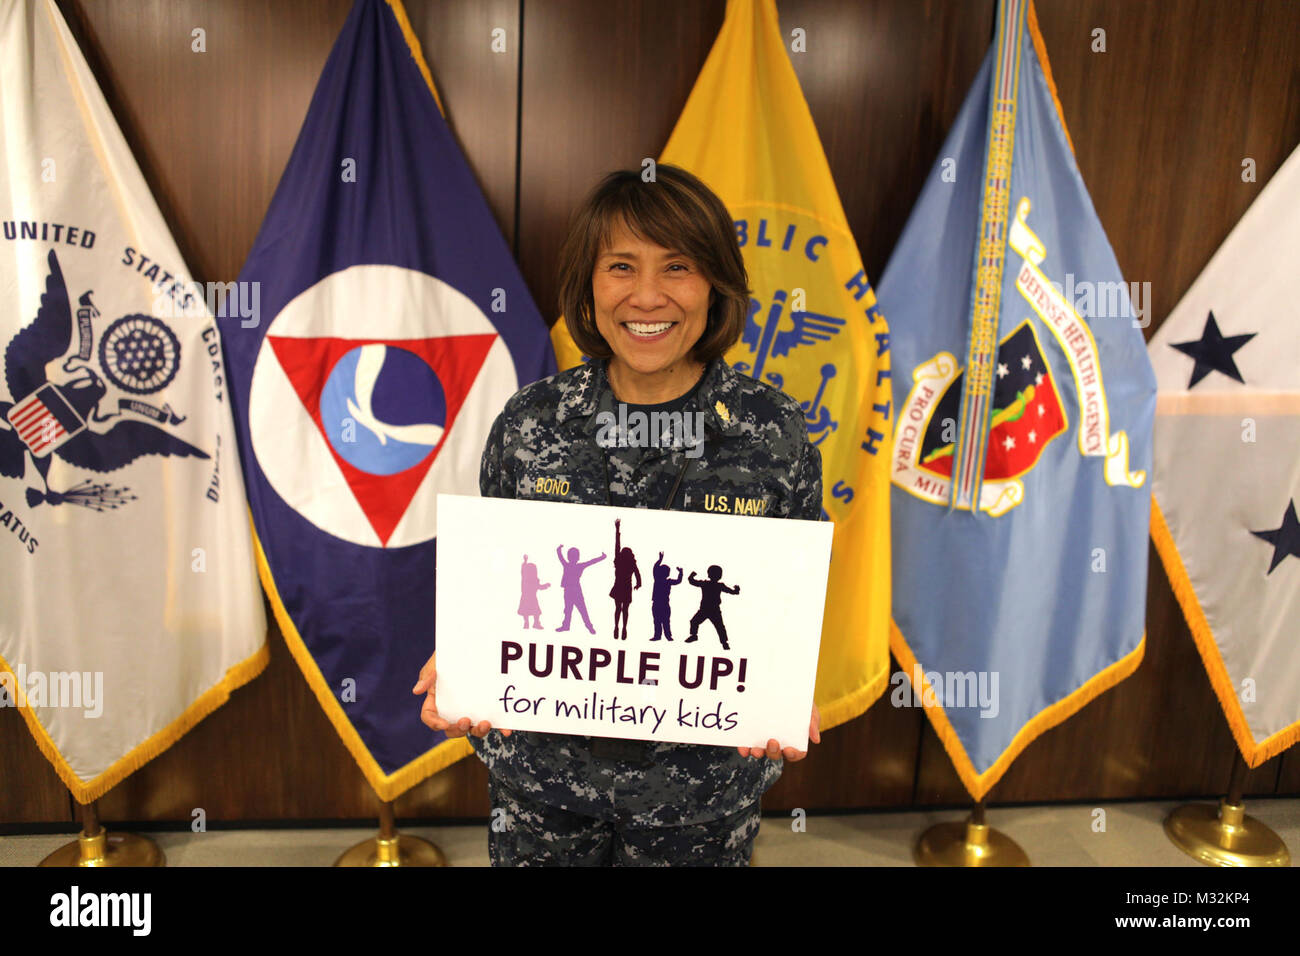 Defense Health Agency Director Vice Admiral Raquel Bono Shows Her